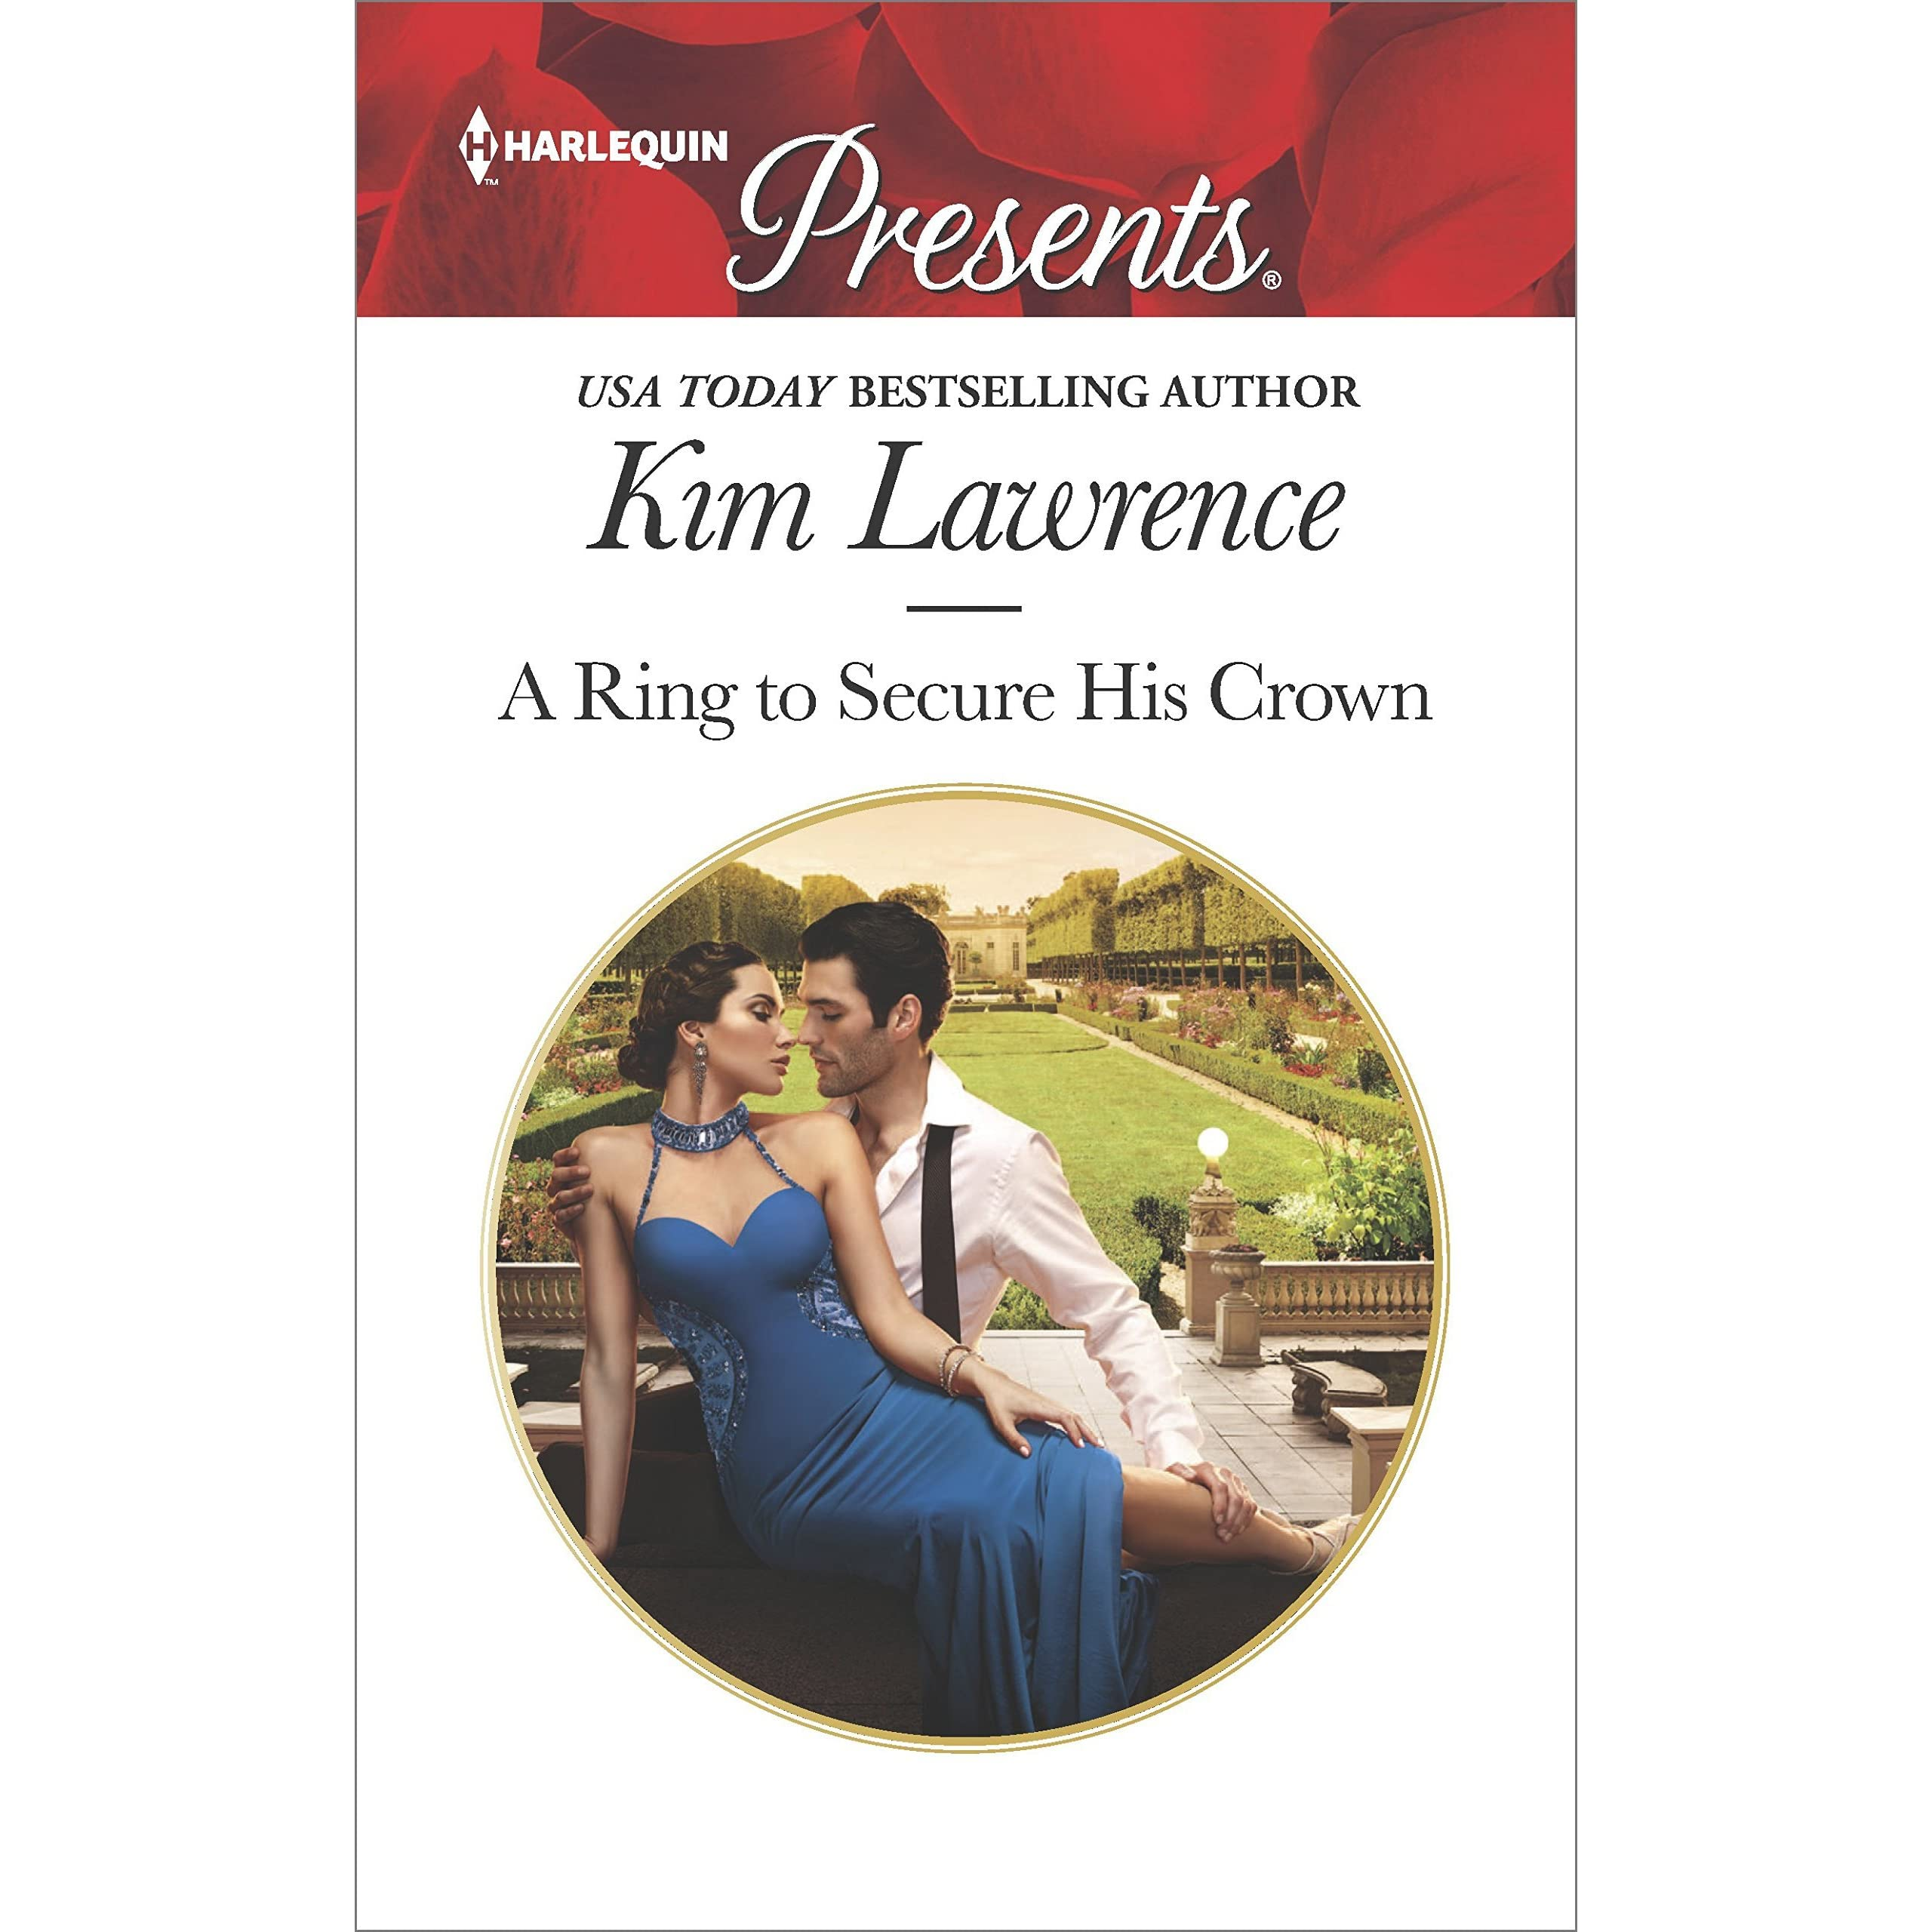 A Ring to Secure His Crown by Kim Lawrence